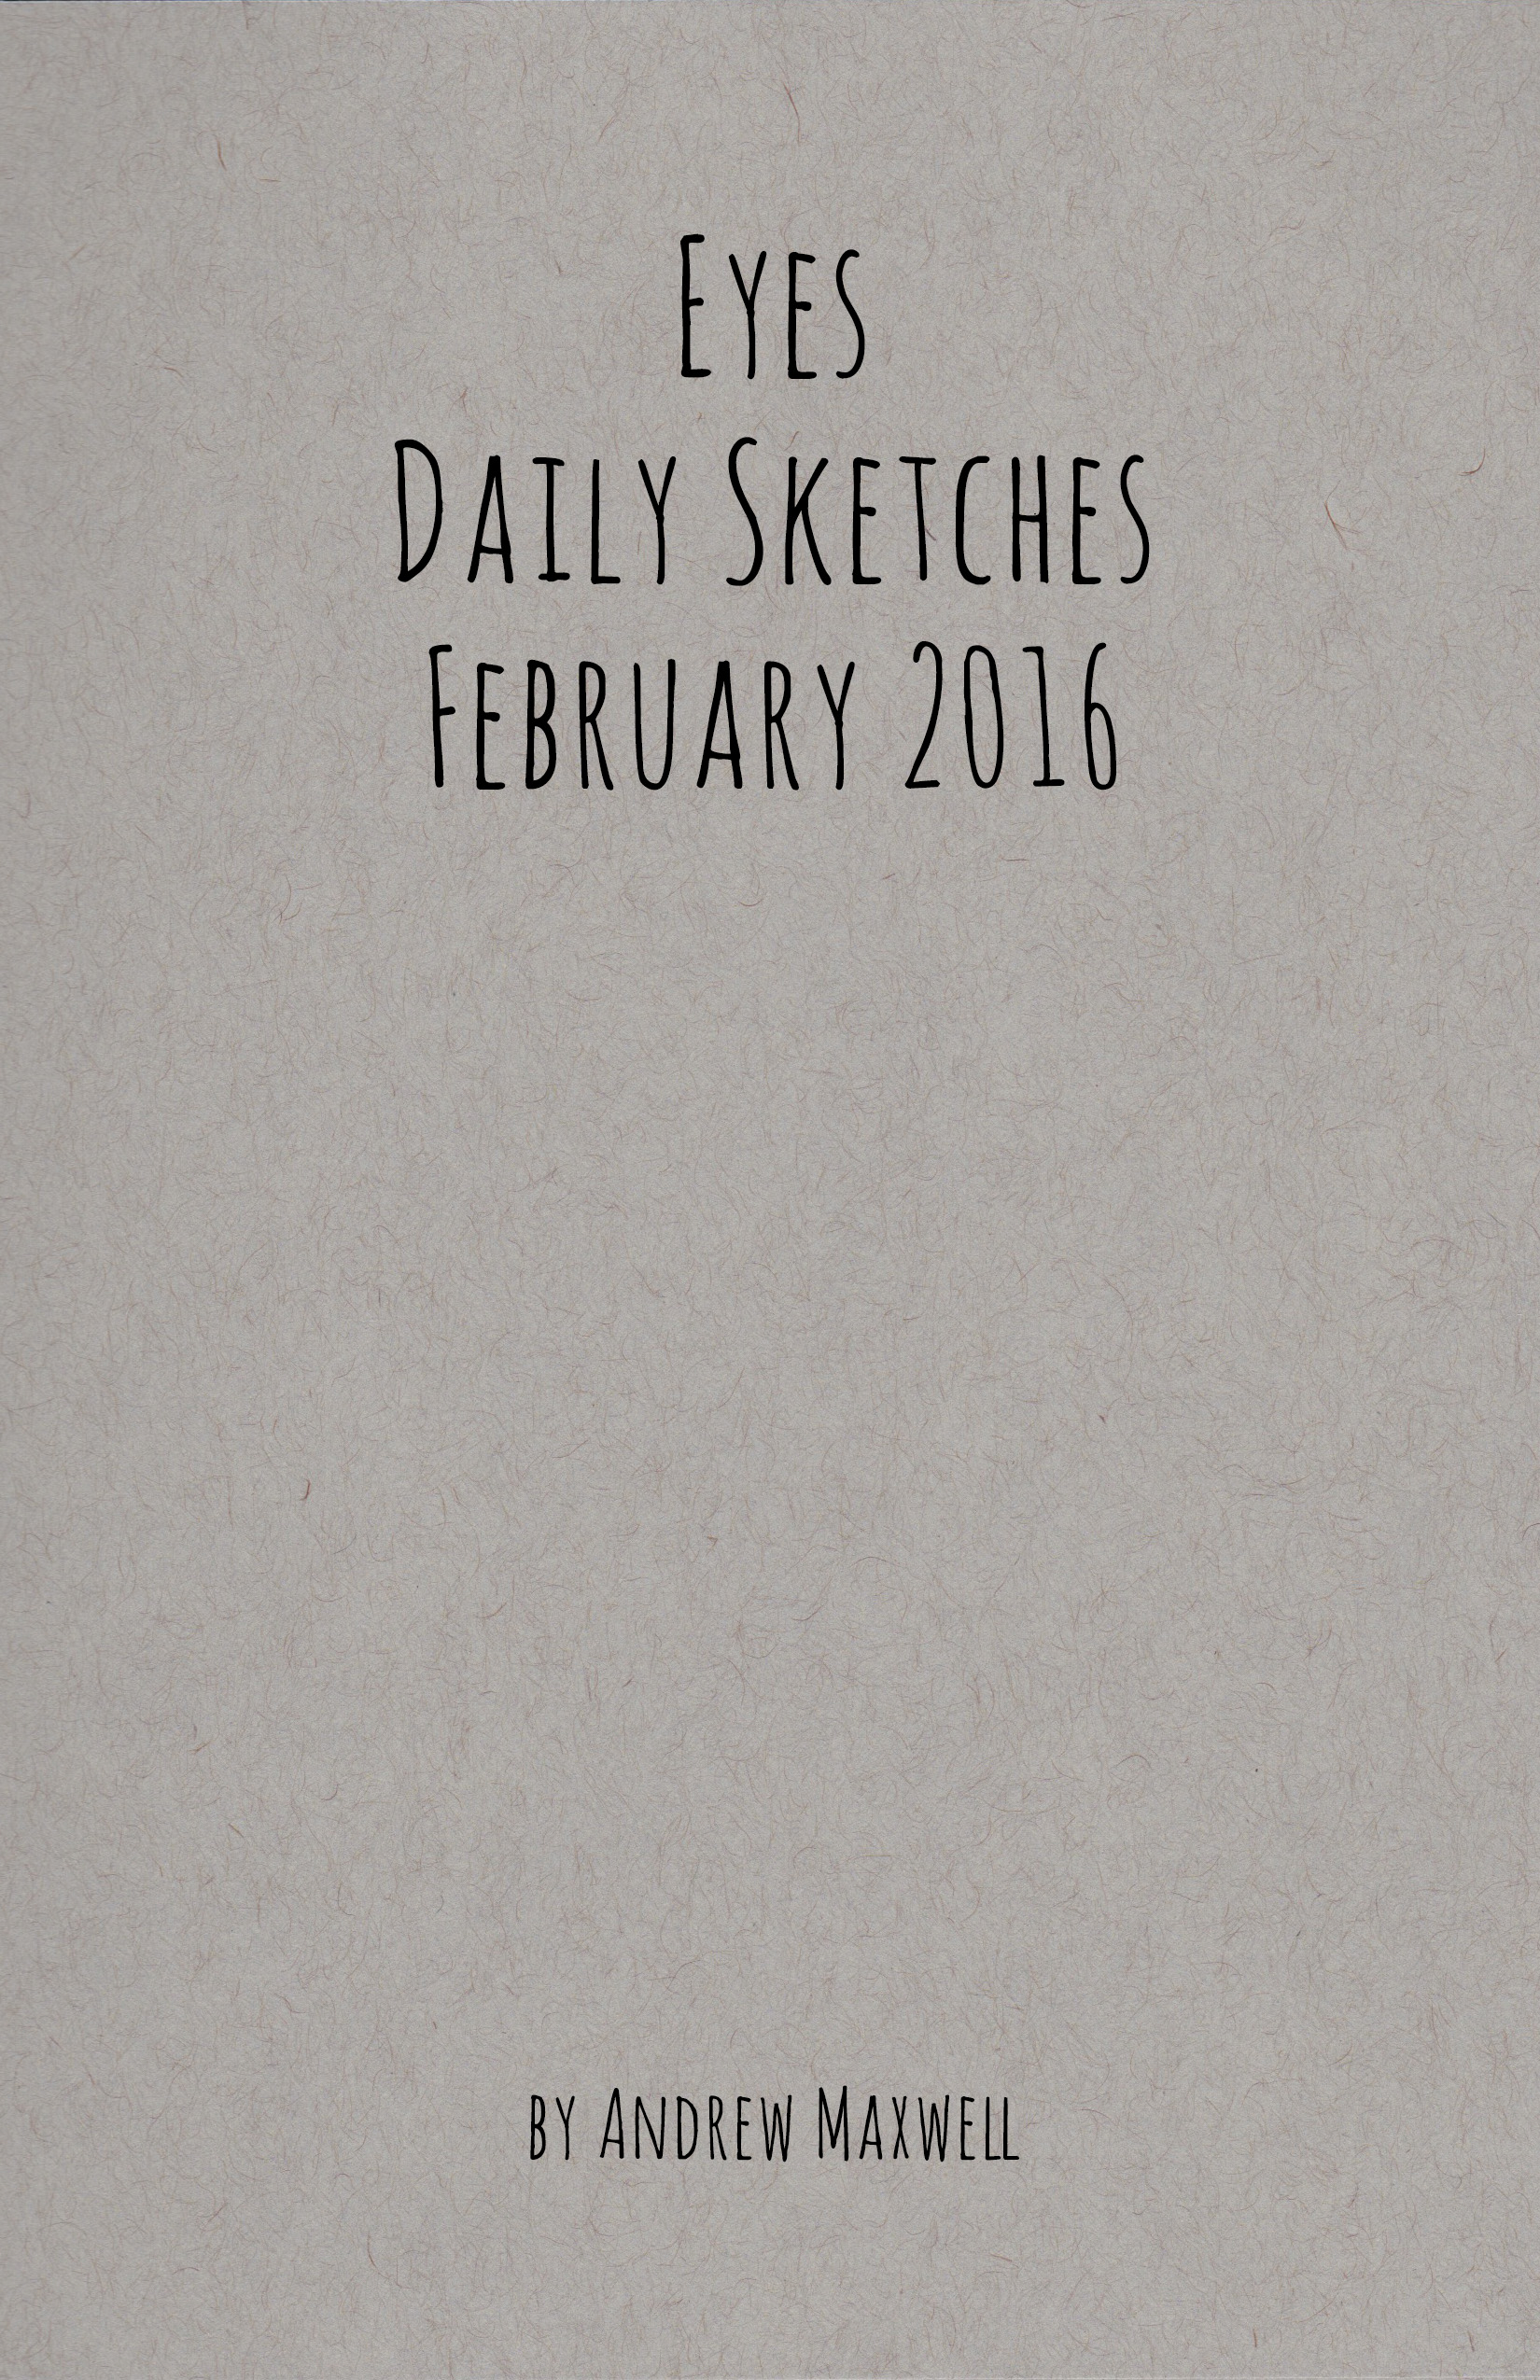 Eye Daily Sketches February 2016 by Andrew Maxwell